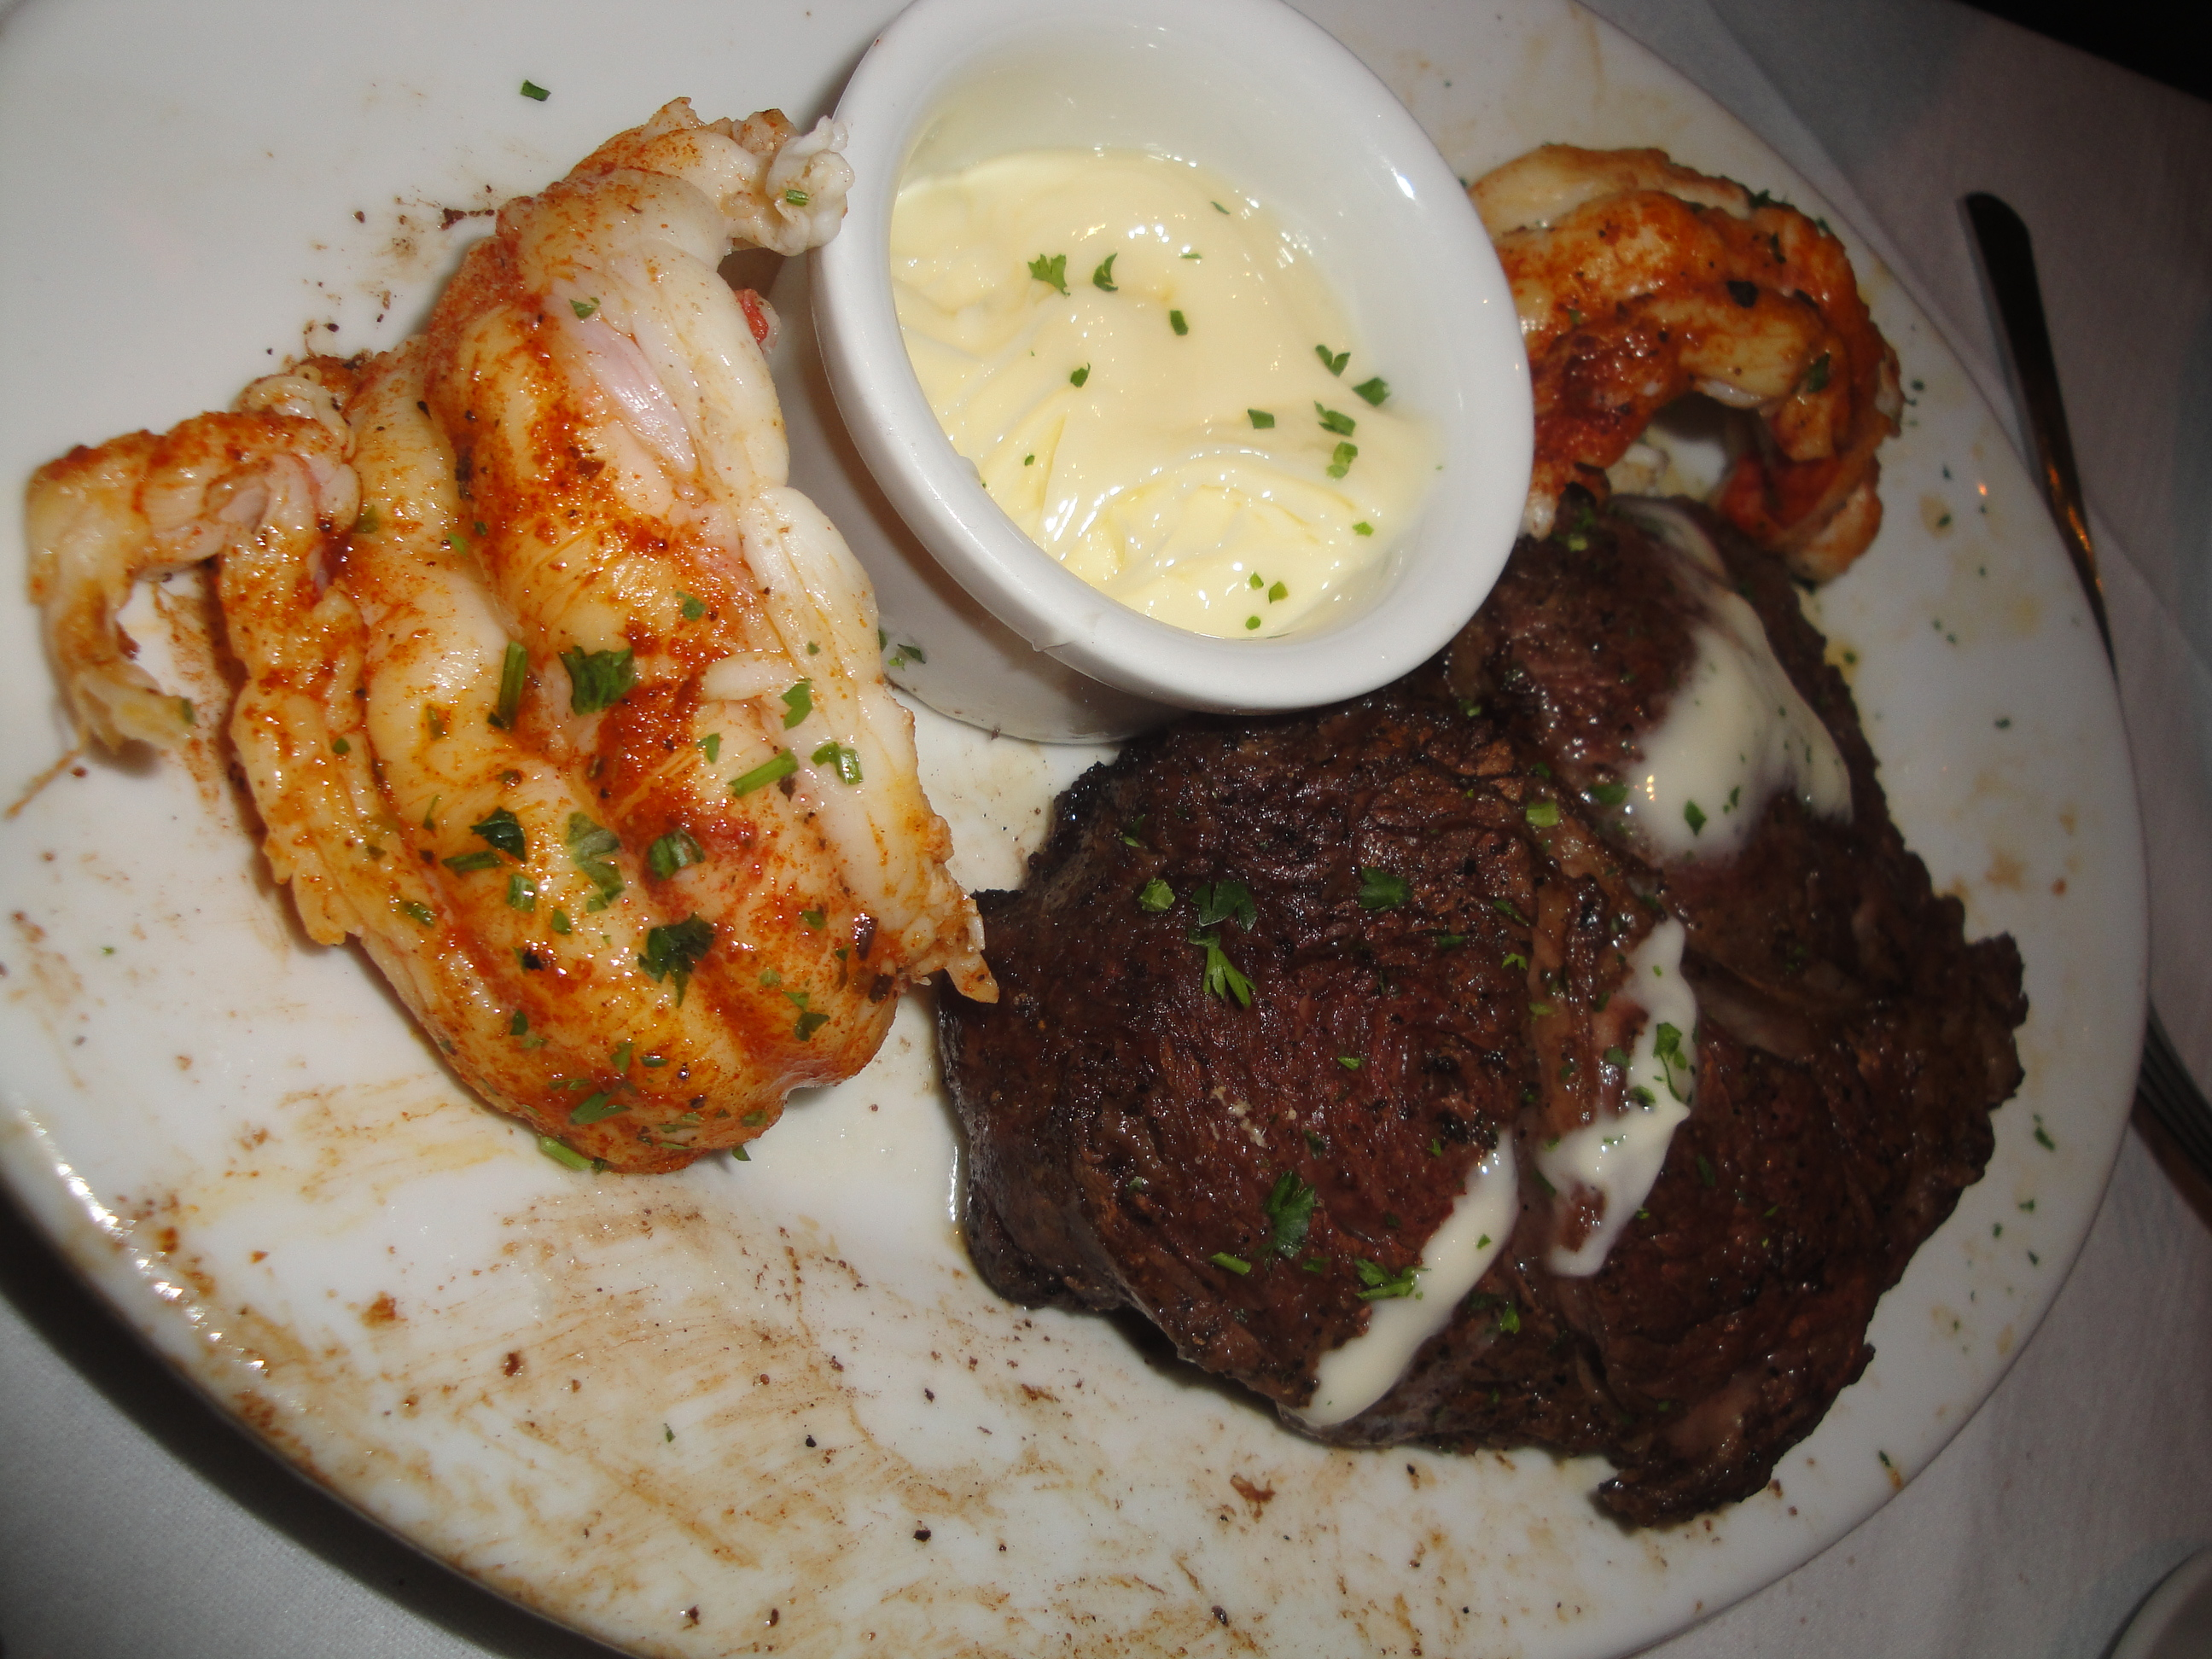 My Husband Ordered The Surf Turf Which Came With A Prime Ribeye And Two Lobster Tails Served With Lemon Butter It Was The Chef S Recommendation For The